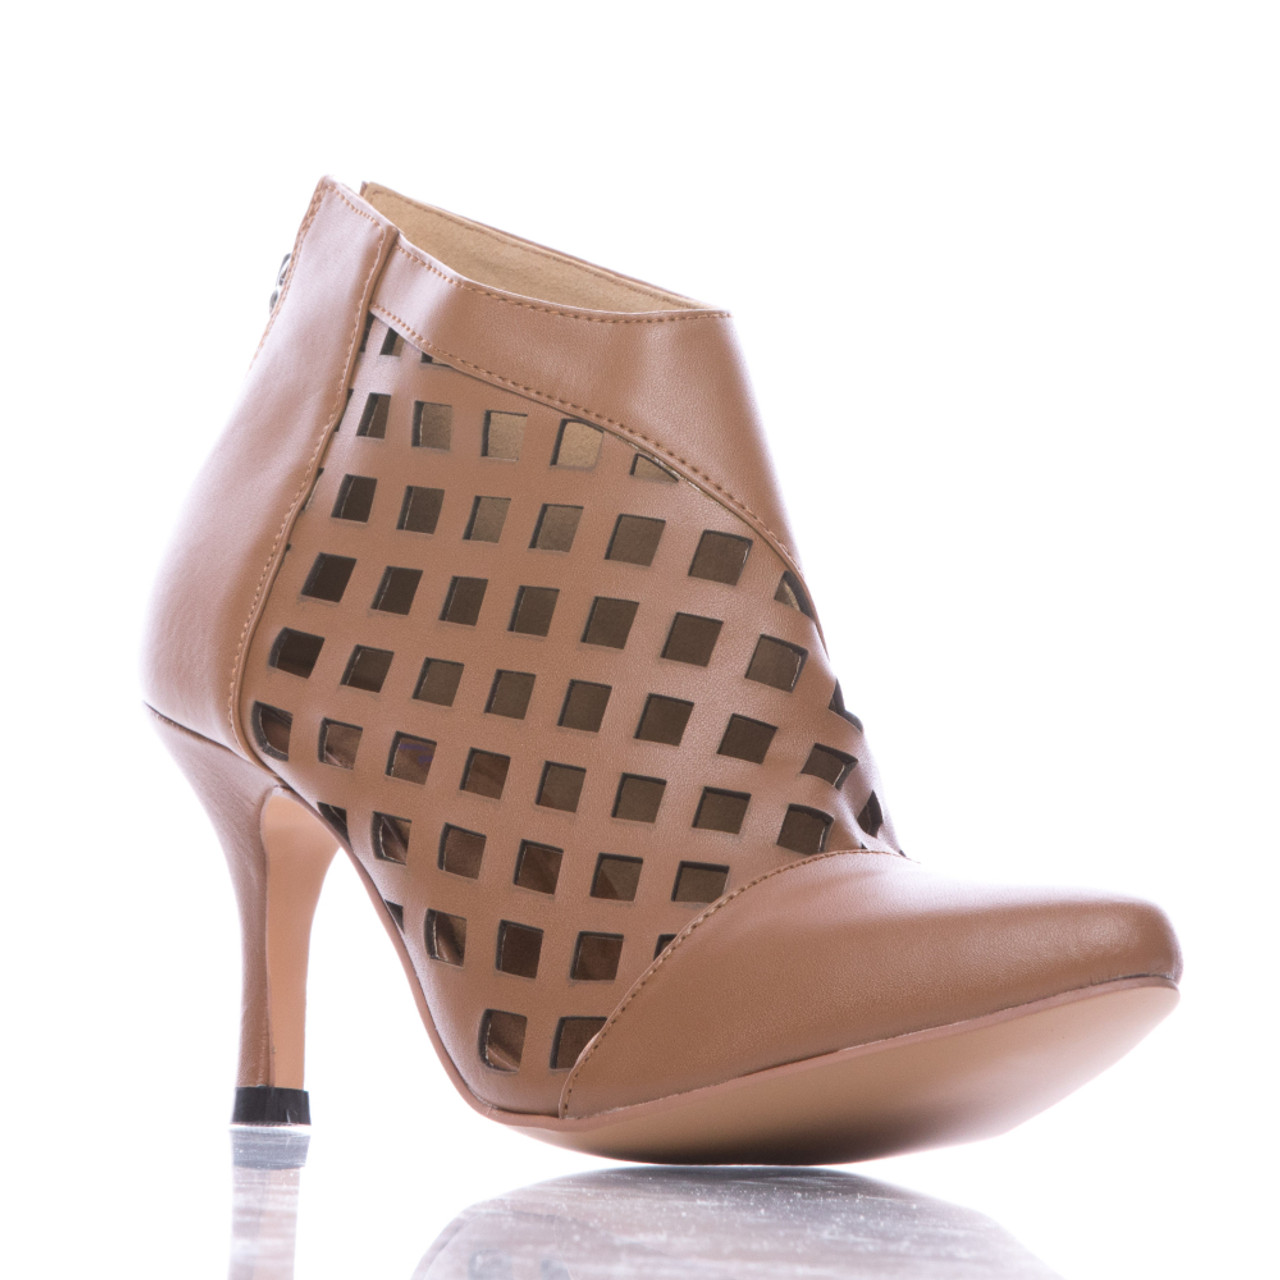 2bc81c78a5b Melissa Mitro - Camel Pointed Toe Cutout Stiletto Bootie - 3 inch Heels -  Burju Shoes